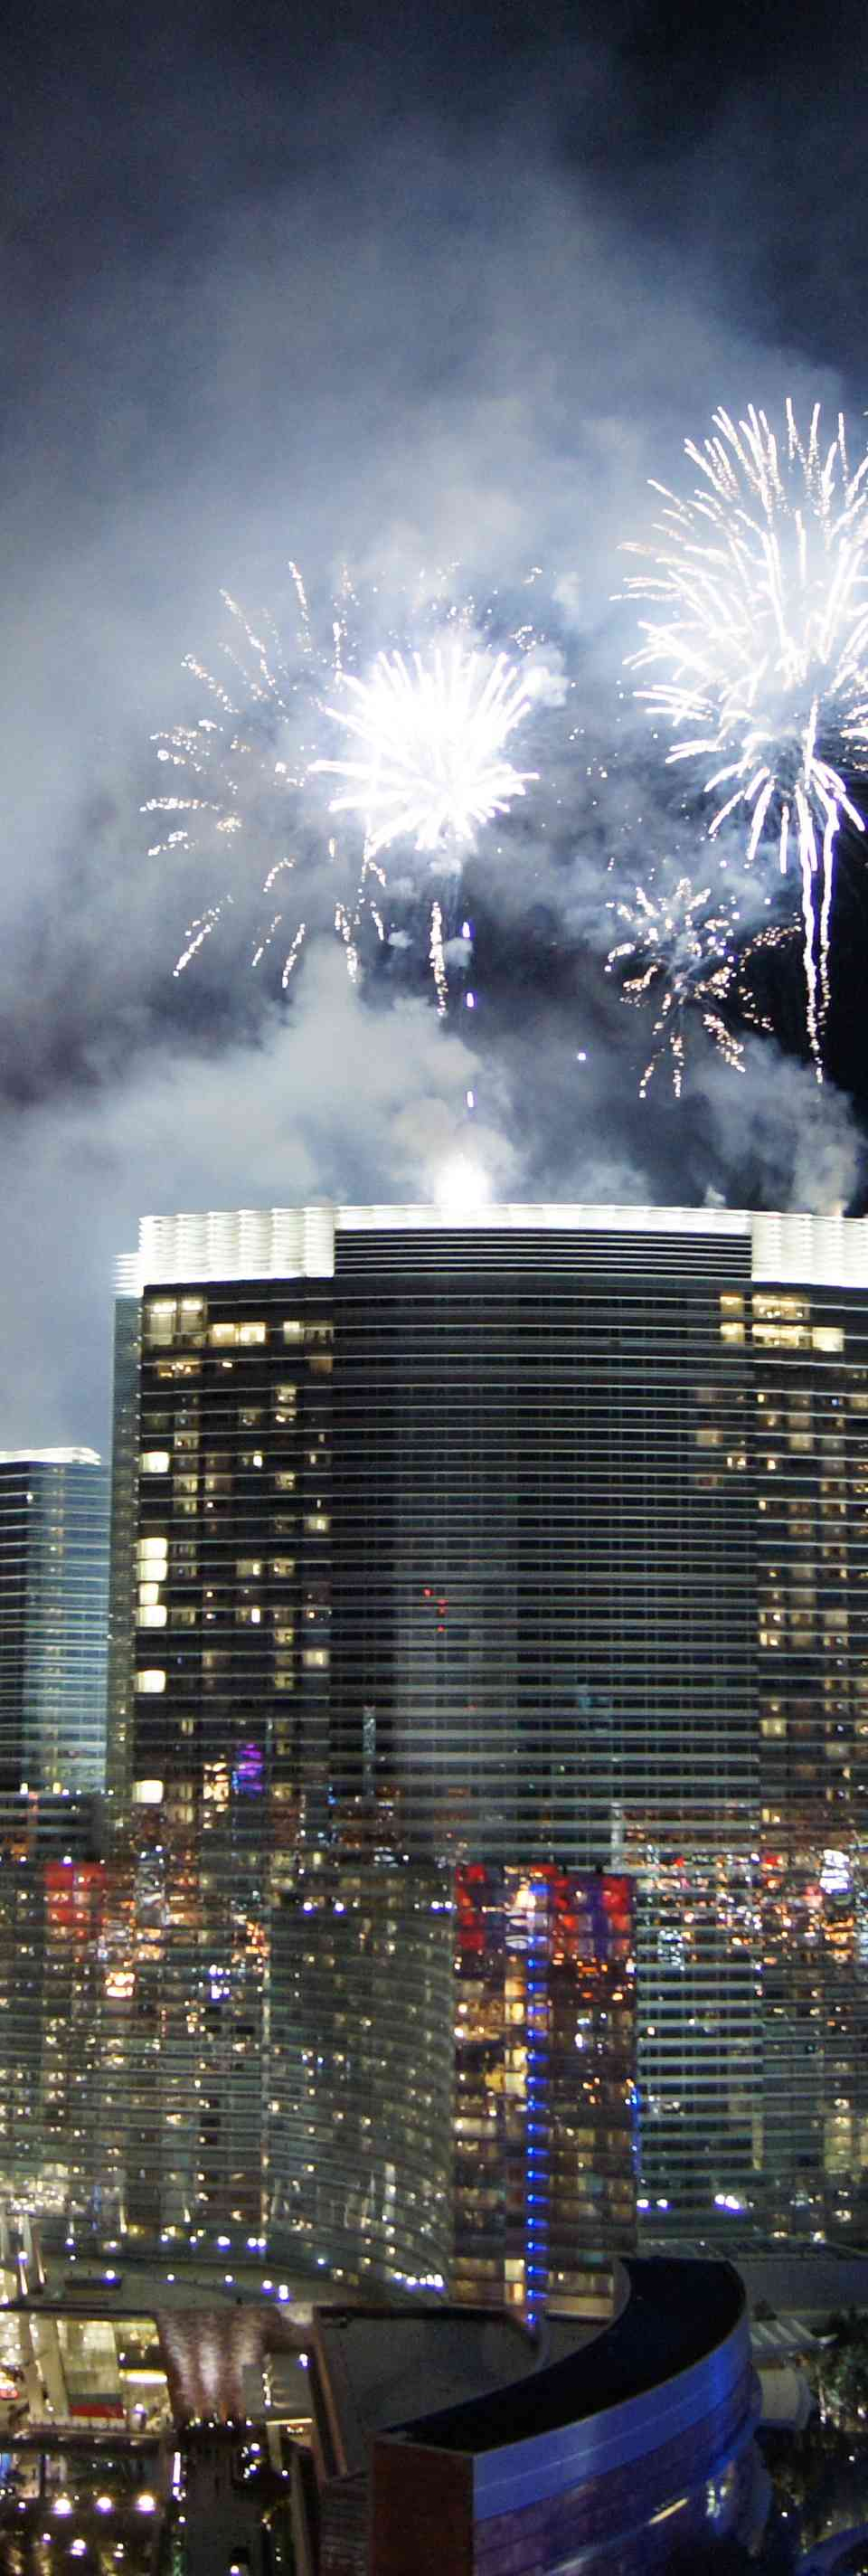 New Year's fireworks over Las Vegas